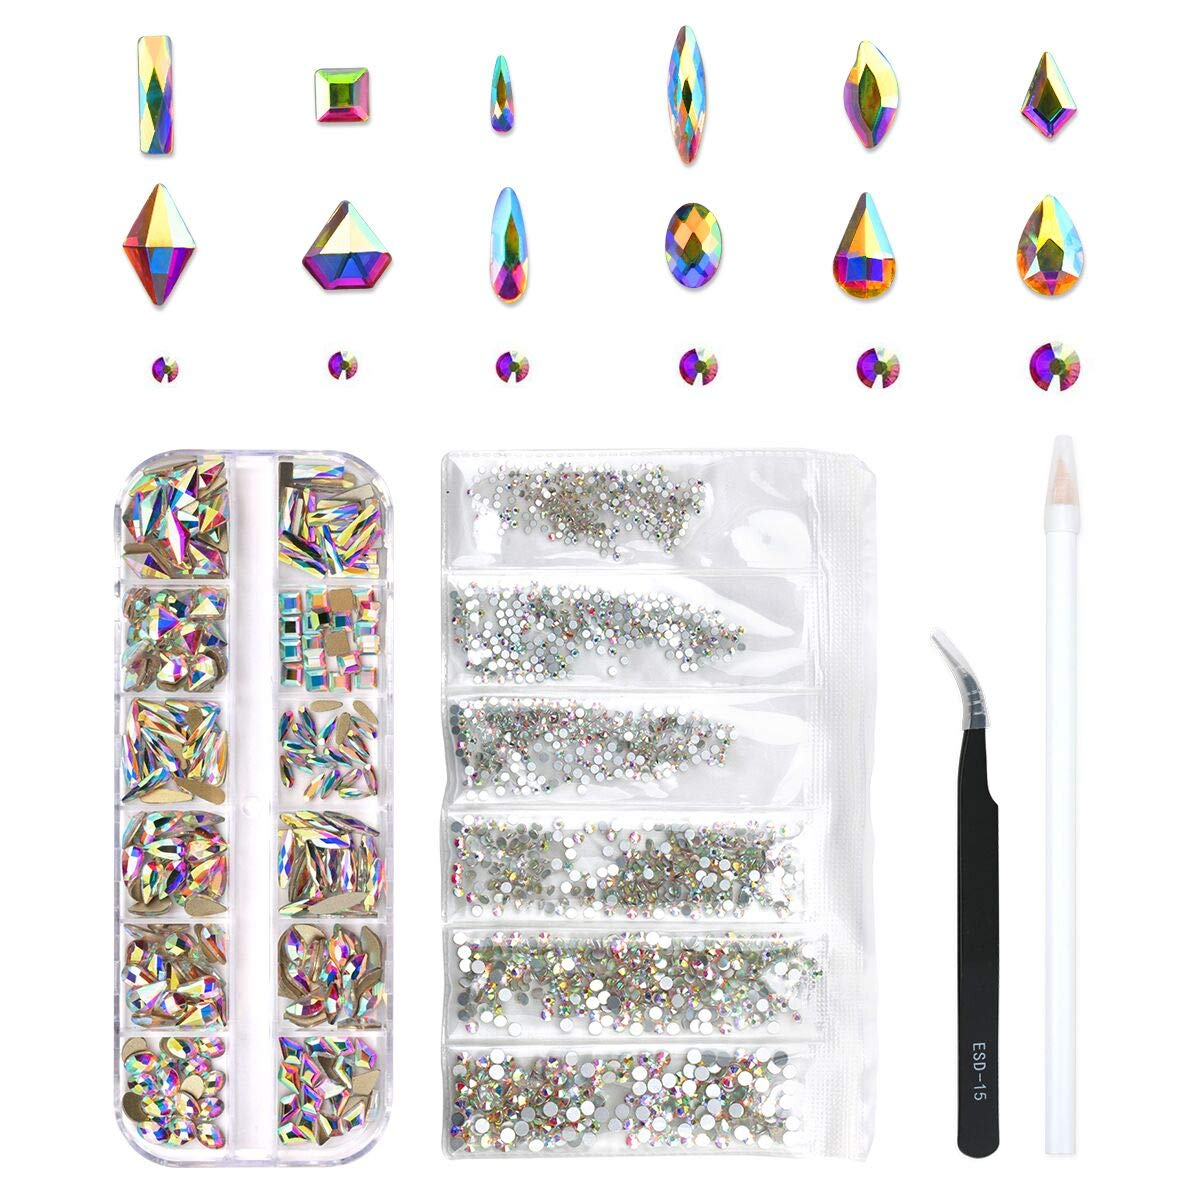 240 Piece Multi Shapes Glass Crystal AB Rhinestones For Nails Art 3D Decorations, Mix 12 Styles FlatBack Nail Crystals Gems Set (240 pcs Crystals+1728 pcs rhinestones) by Nibiru